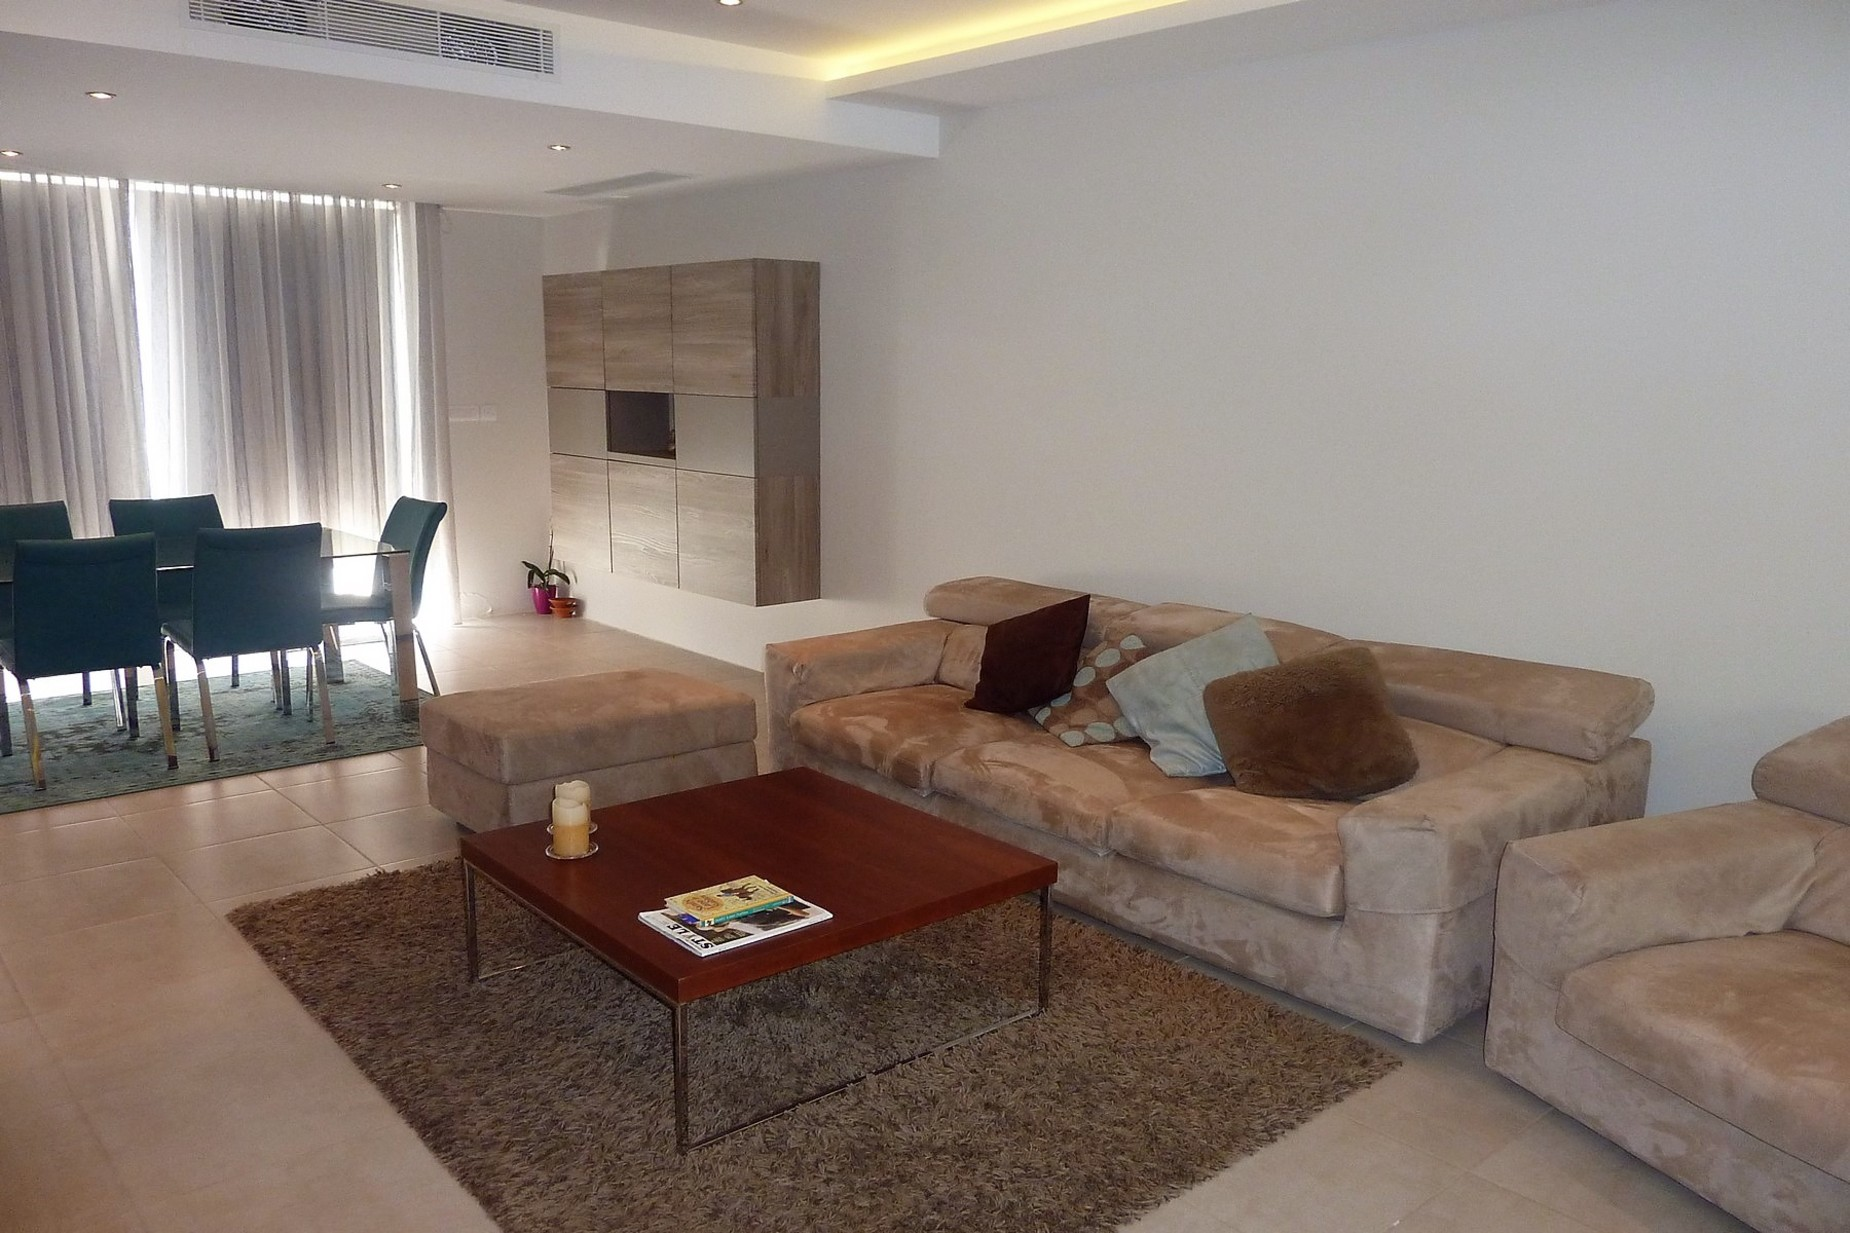 3 bed Penthouse For Rent in Ibragg, Ibragg - thumb 4